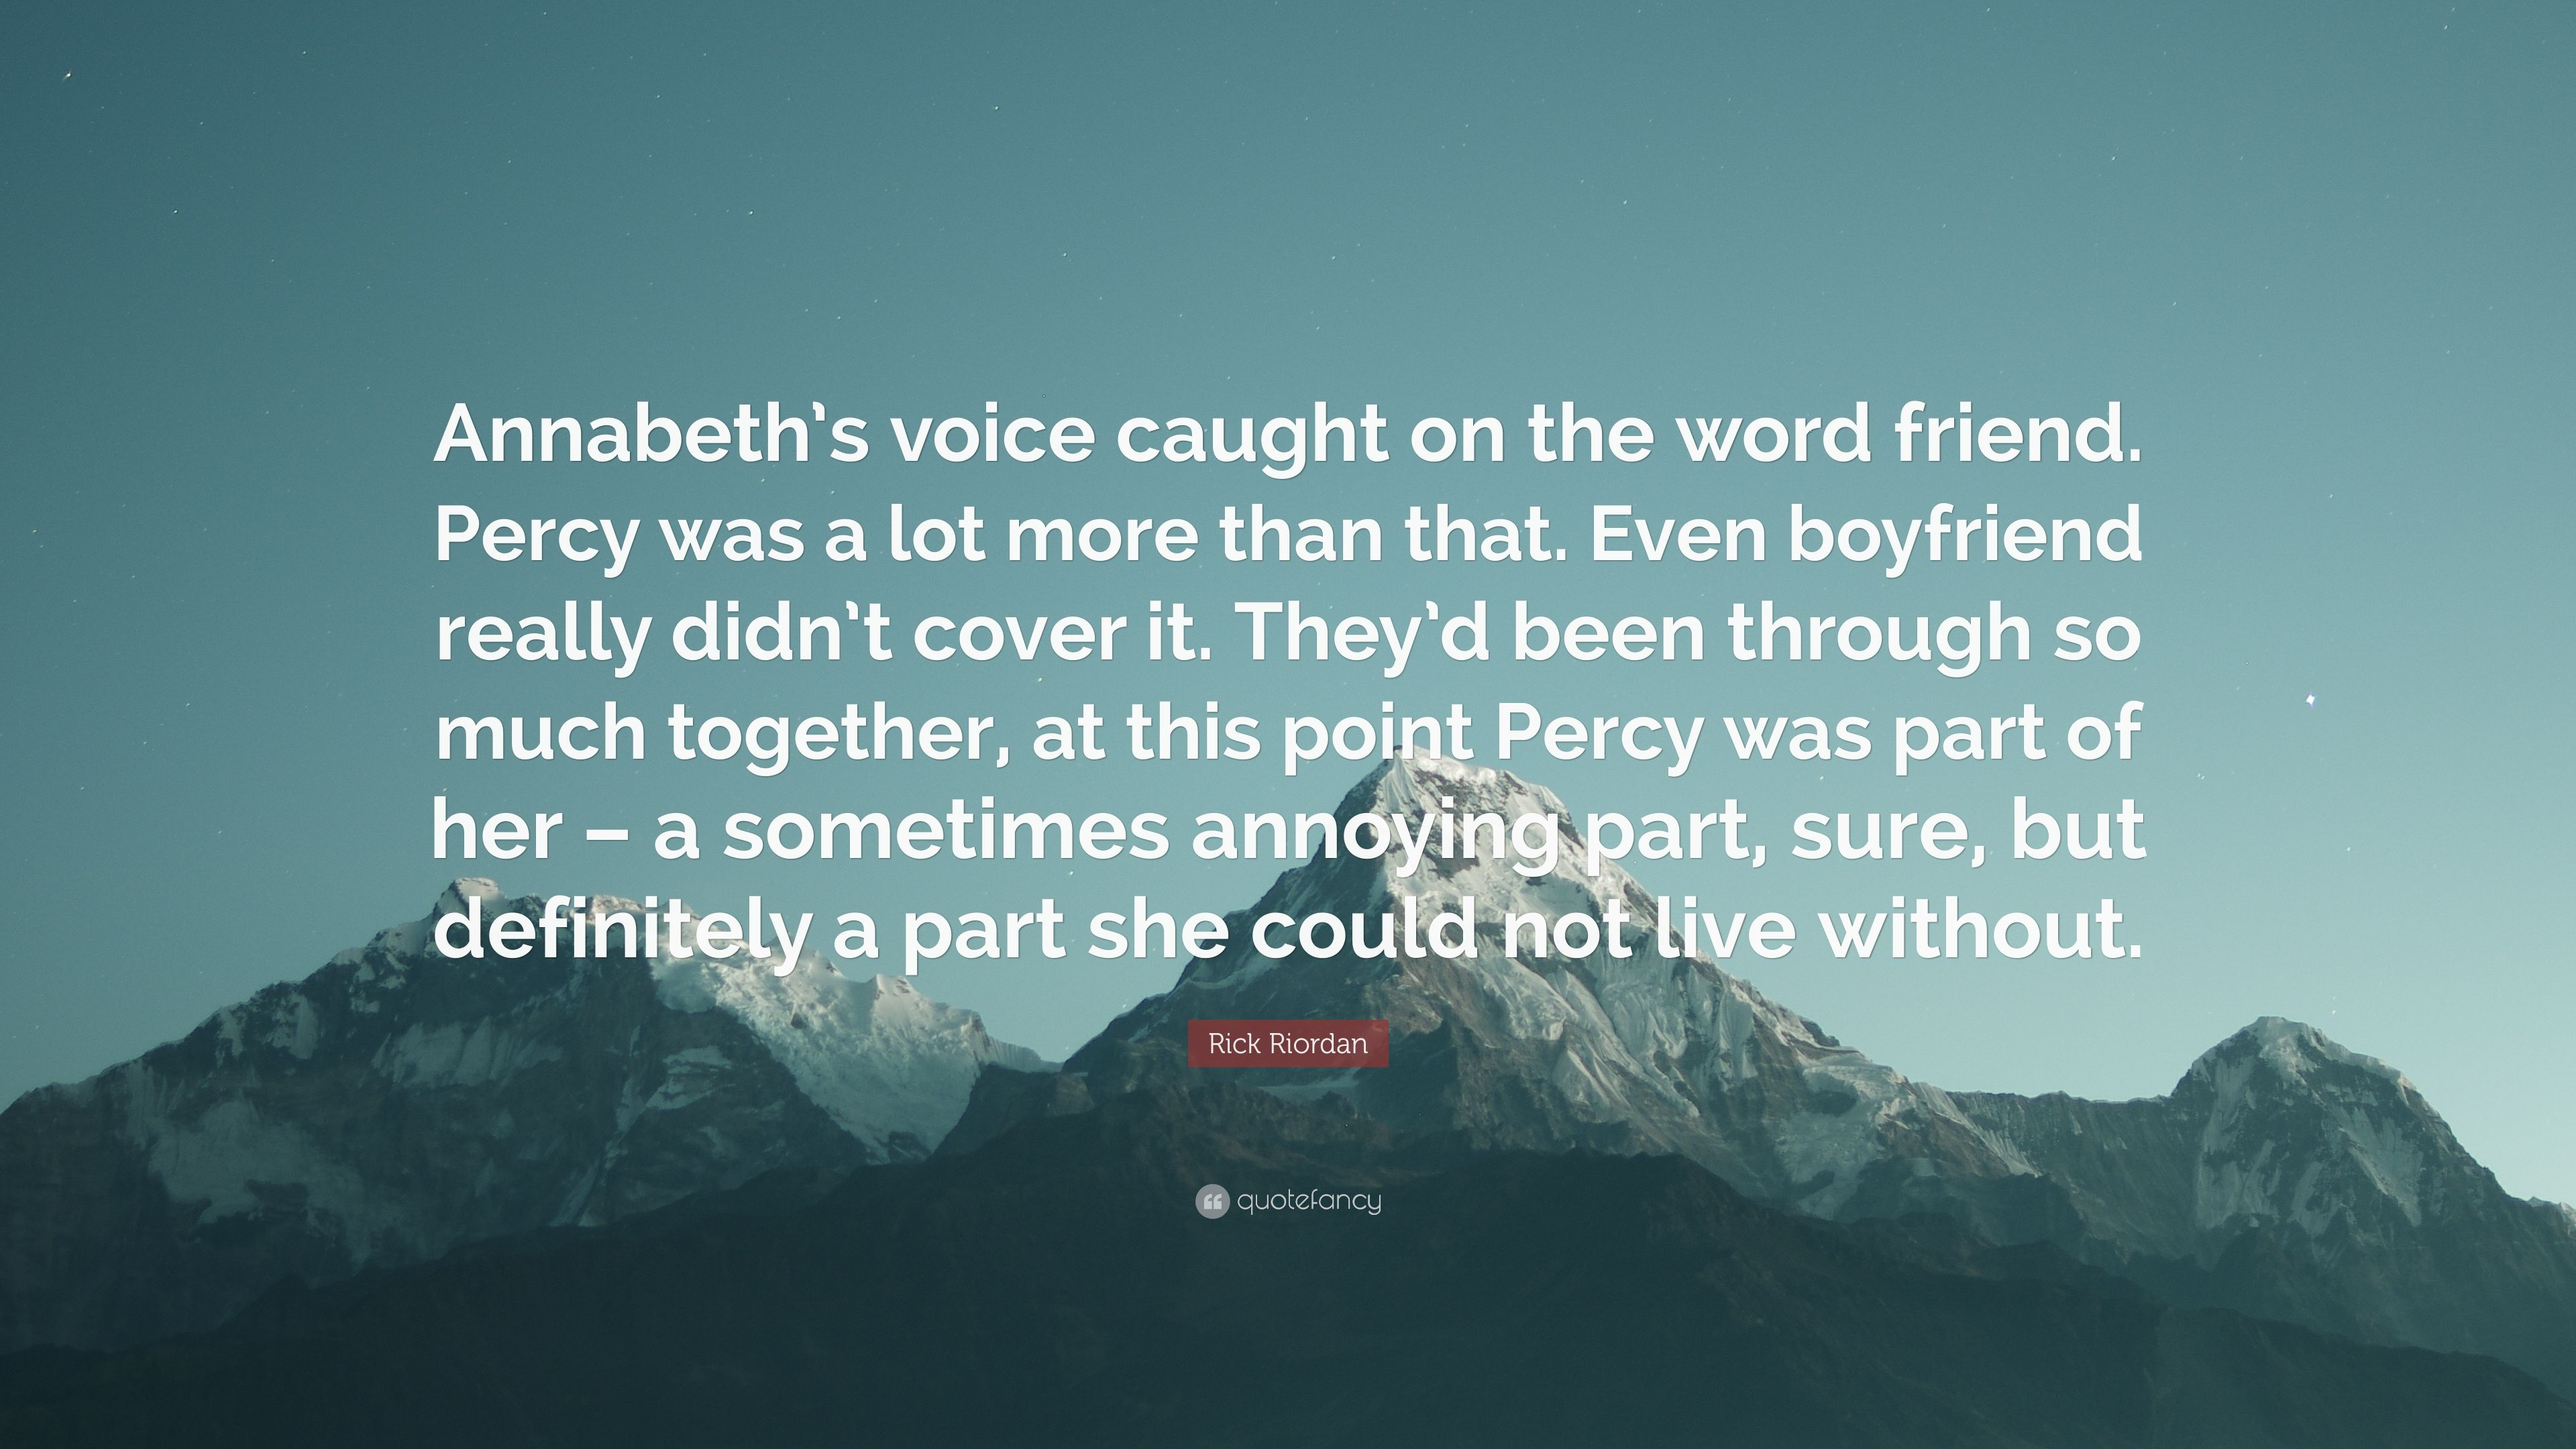 Rick Riordan Quote Annabeths Voice Caught On The Word Friend Percy Was A